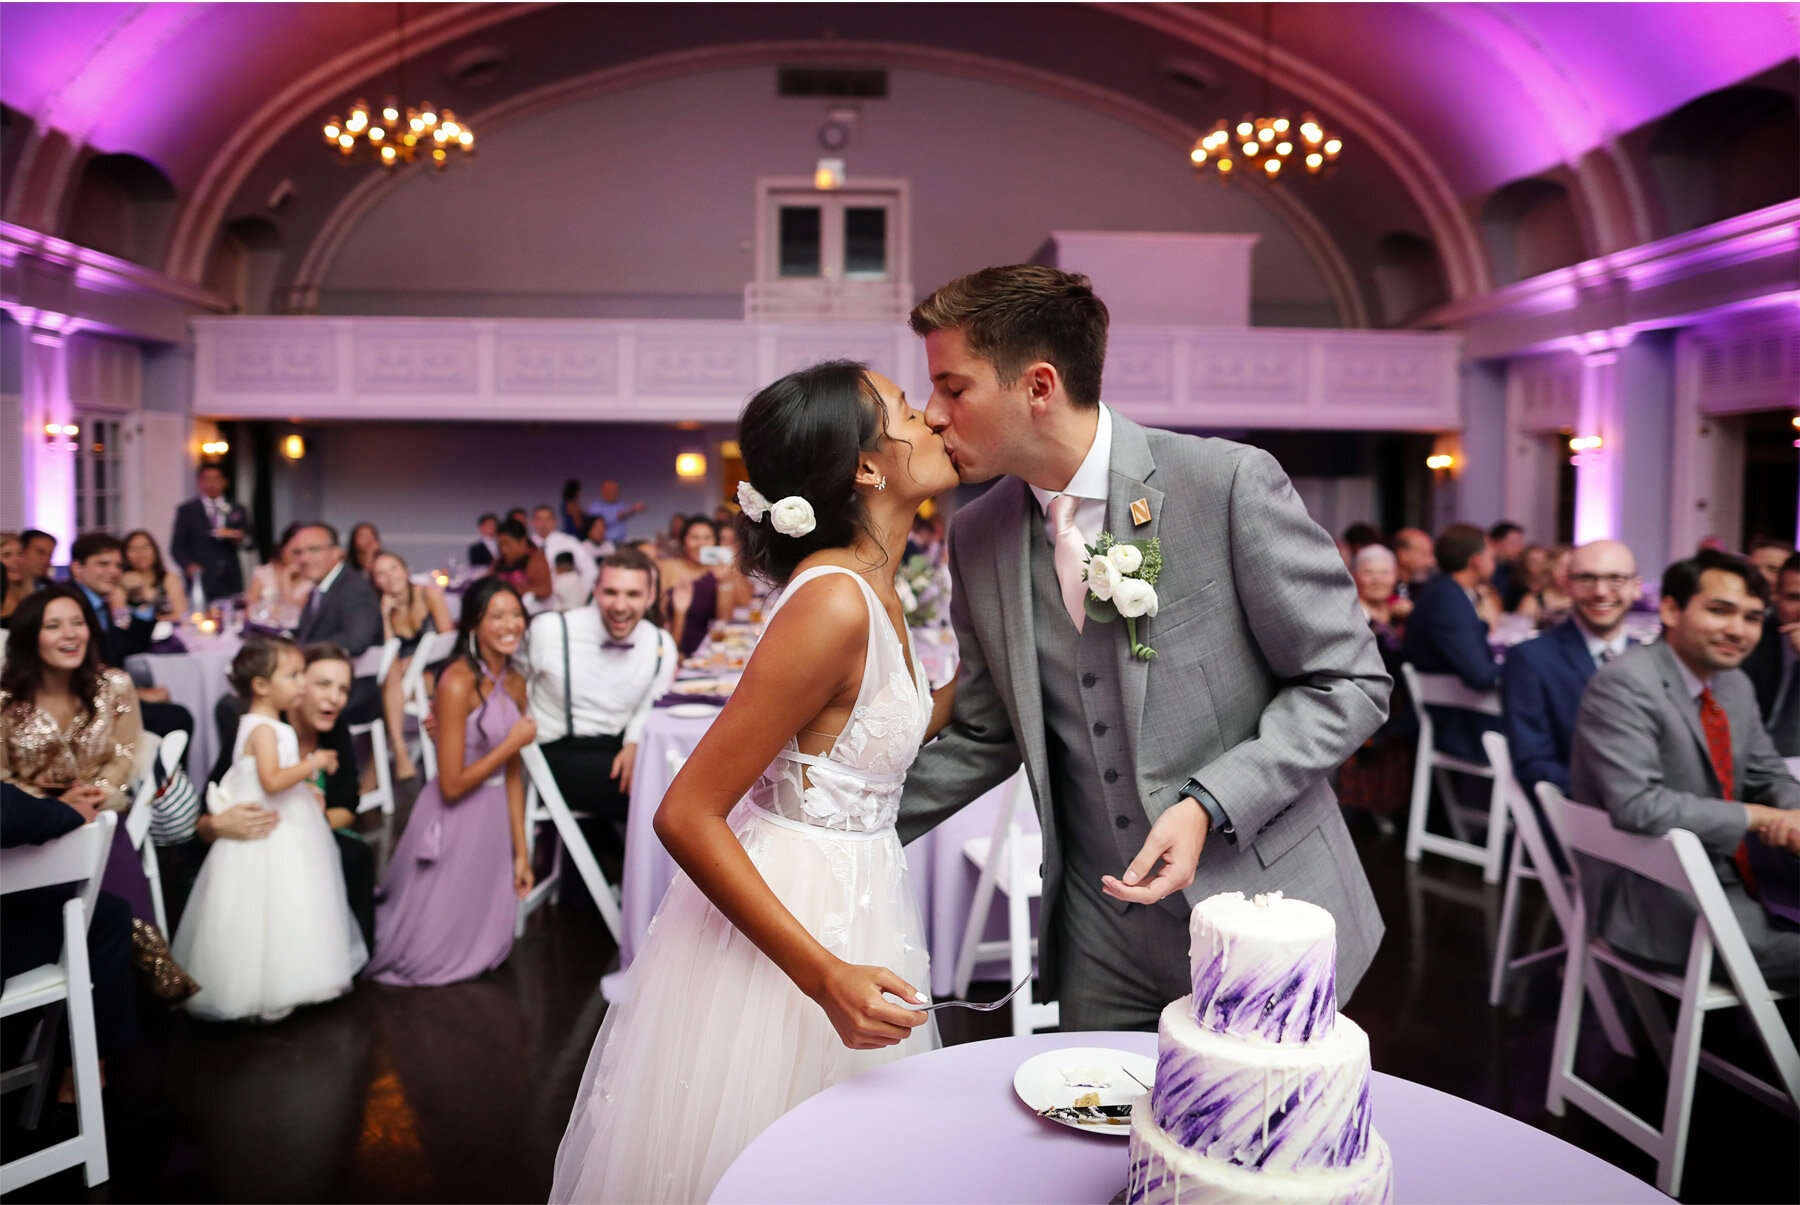 24-Wedding-by-Andrew-Vick-Photography-Chicago-Illinois-Reception-Womans-Club-of-Evanston-Cake-Kiss-Ashley-and-Nicholas.jpg